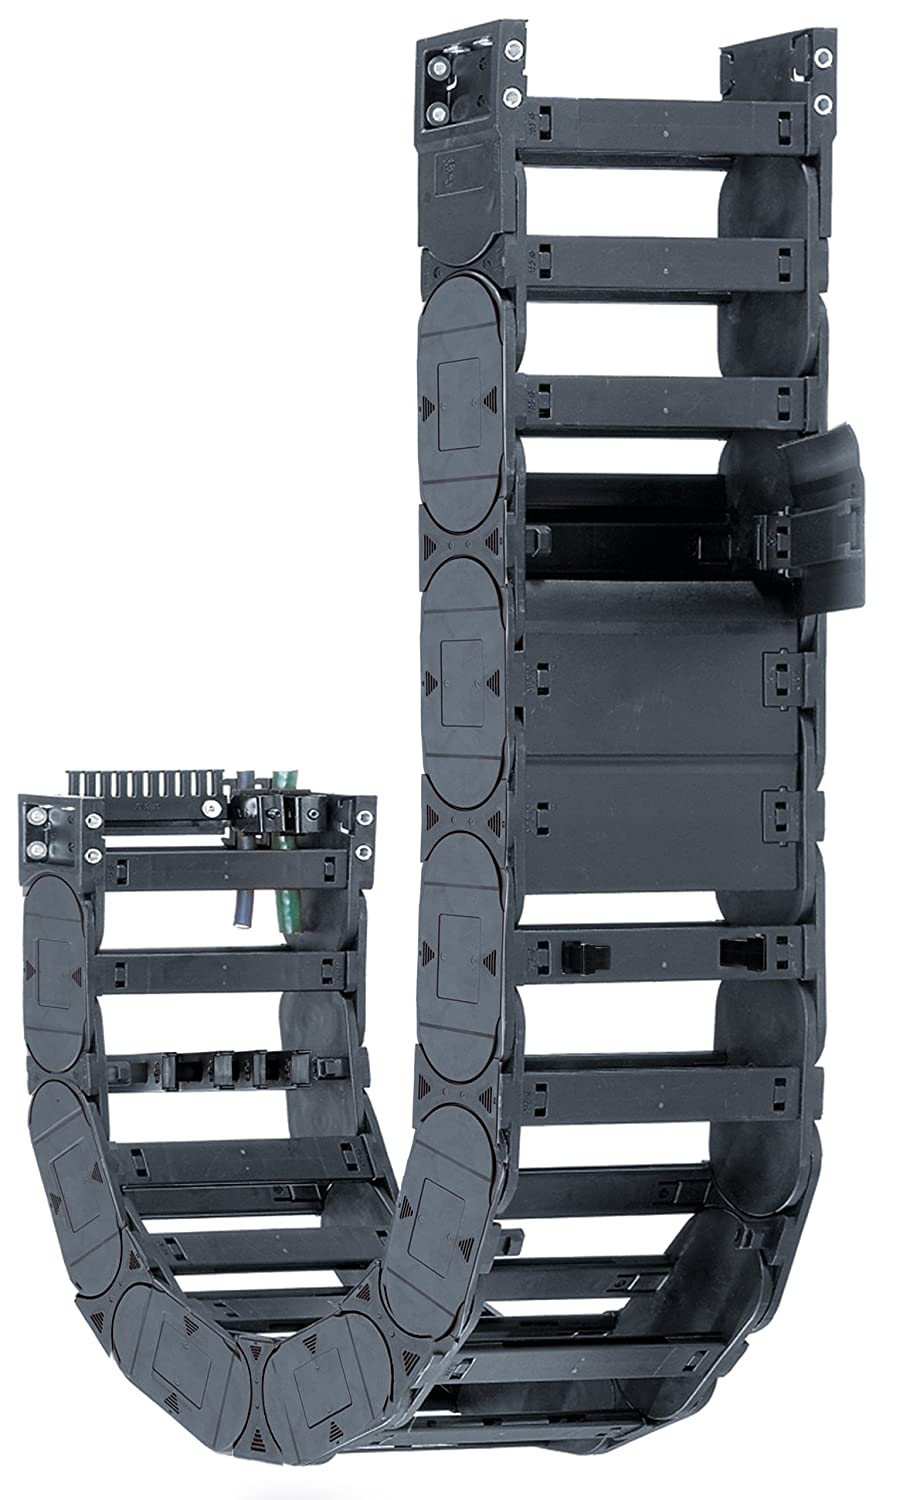 Igus E4-42-20-200-0 Energy Chain Cable Carrier, Polymer, Snap-Open Crossbar, 1.5 Max Cable Diameter, 1.65